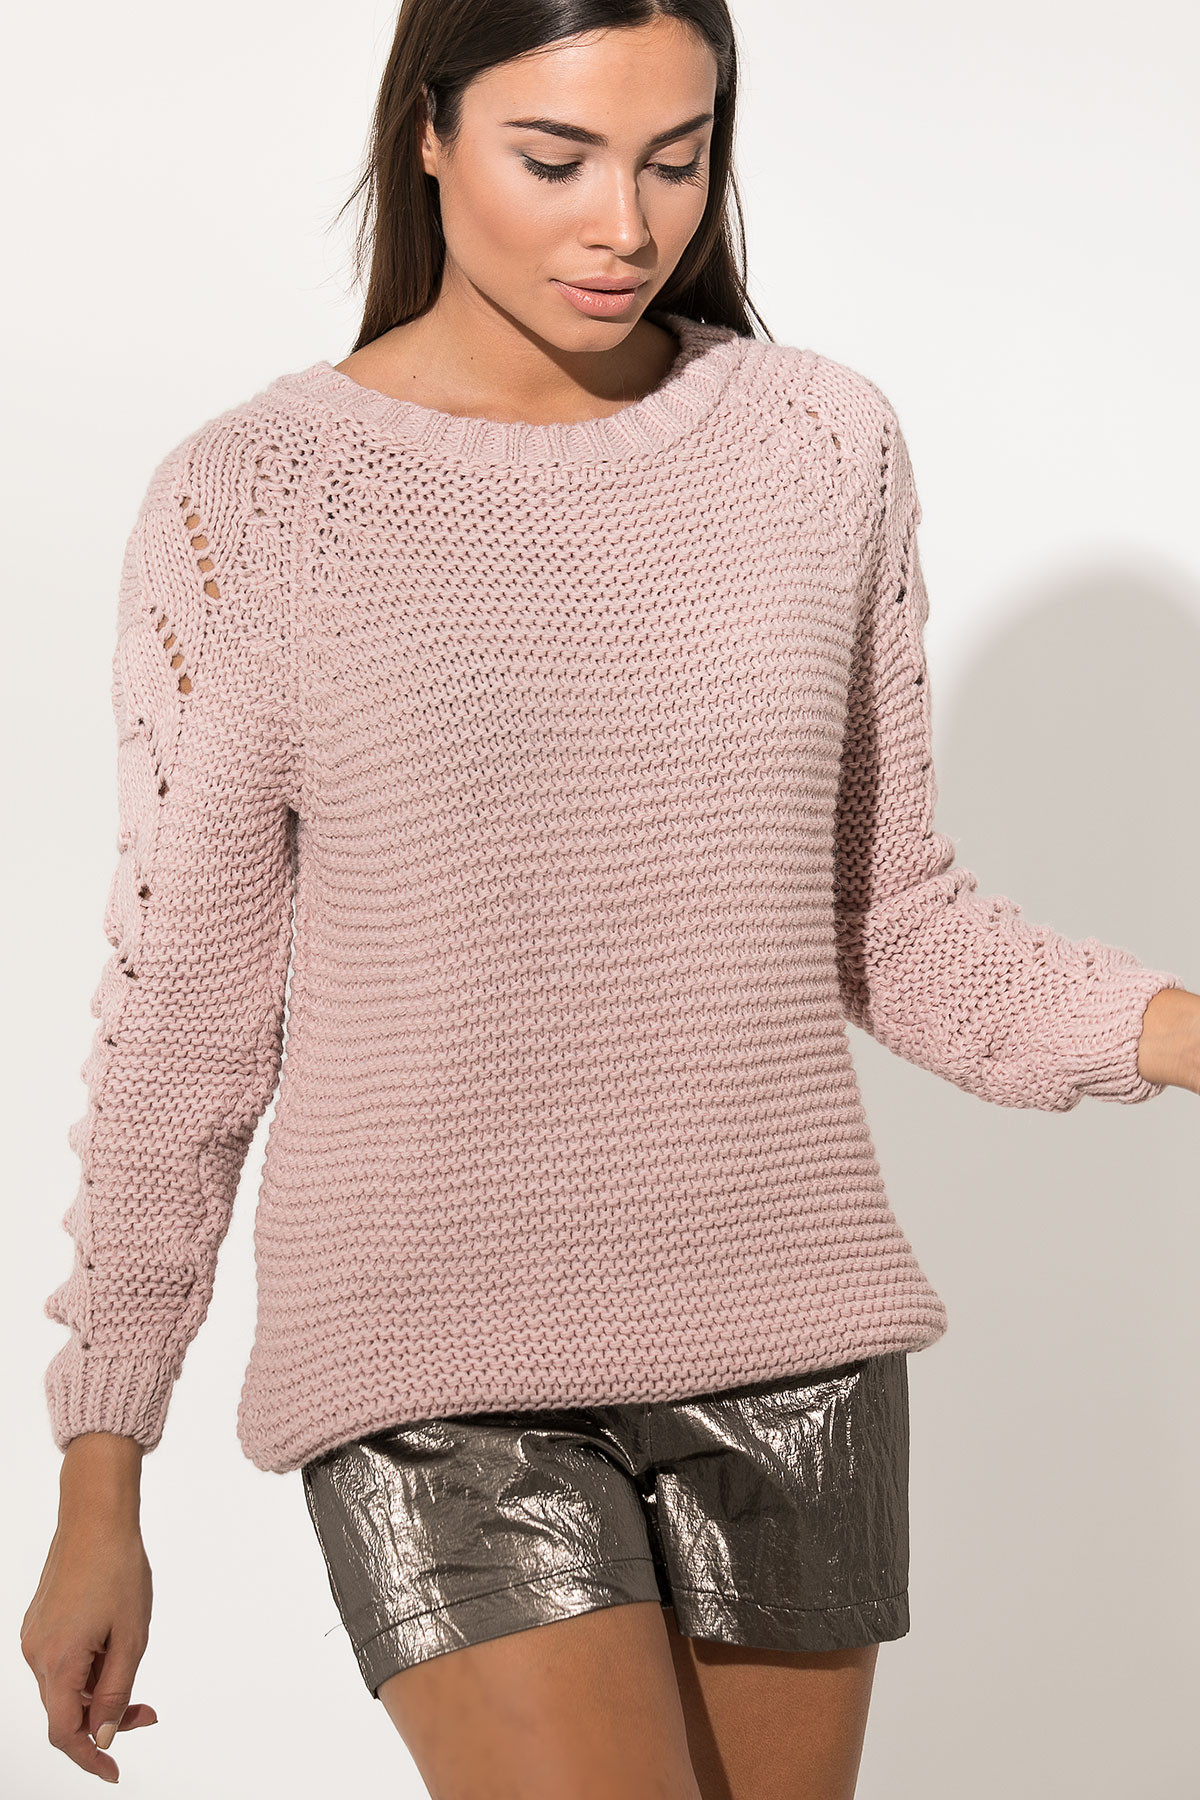 PINK ROUND NECK KNITTED BLOUSE